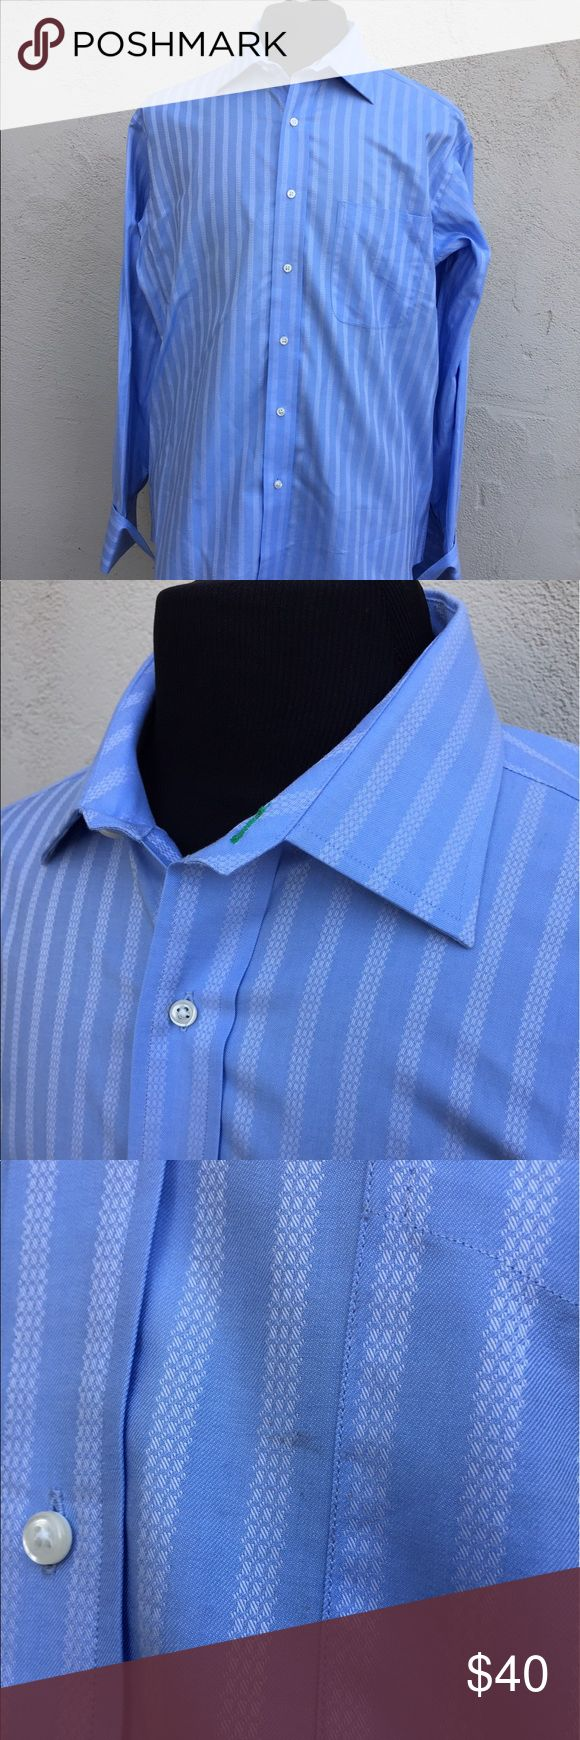 Tommy Hilfiger Vintage Striped French Cuff shirt-L Tommy Hilfiger Vintage Striped French Cuff shirt. Size Large in Blue. Small worn mark shown in picture. Gently used in good condition. Tommy Hilfiger Shirts Dress Shirts